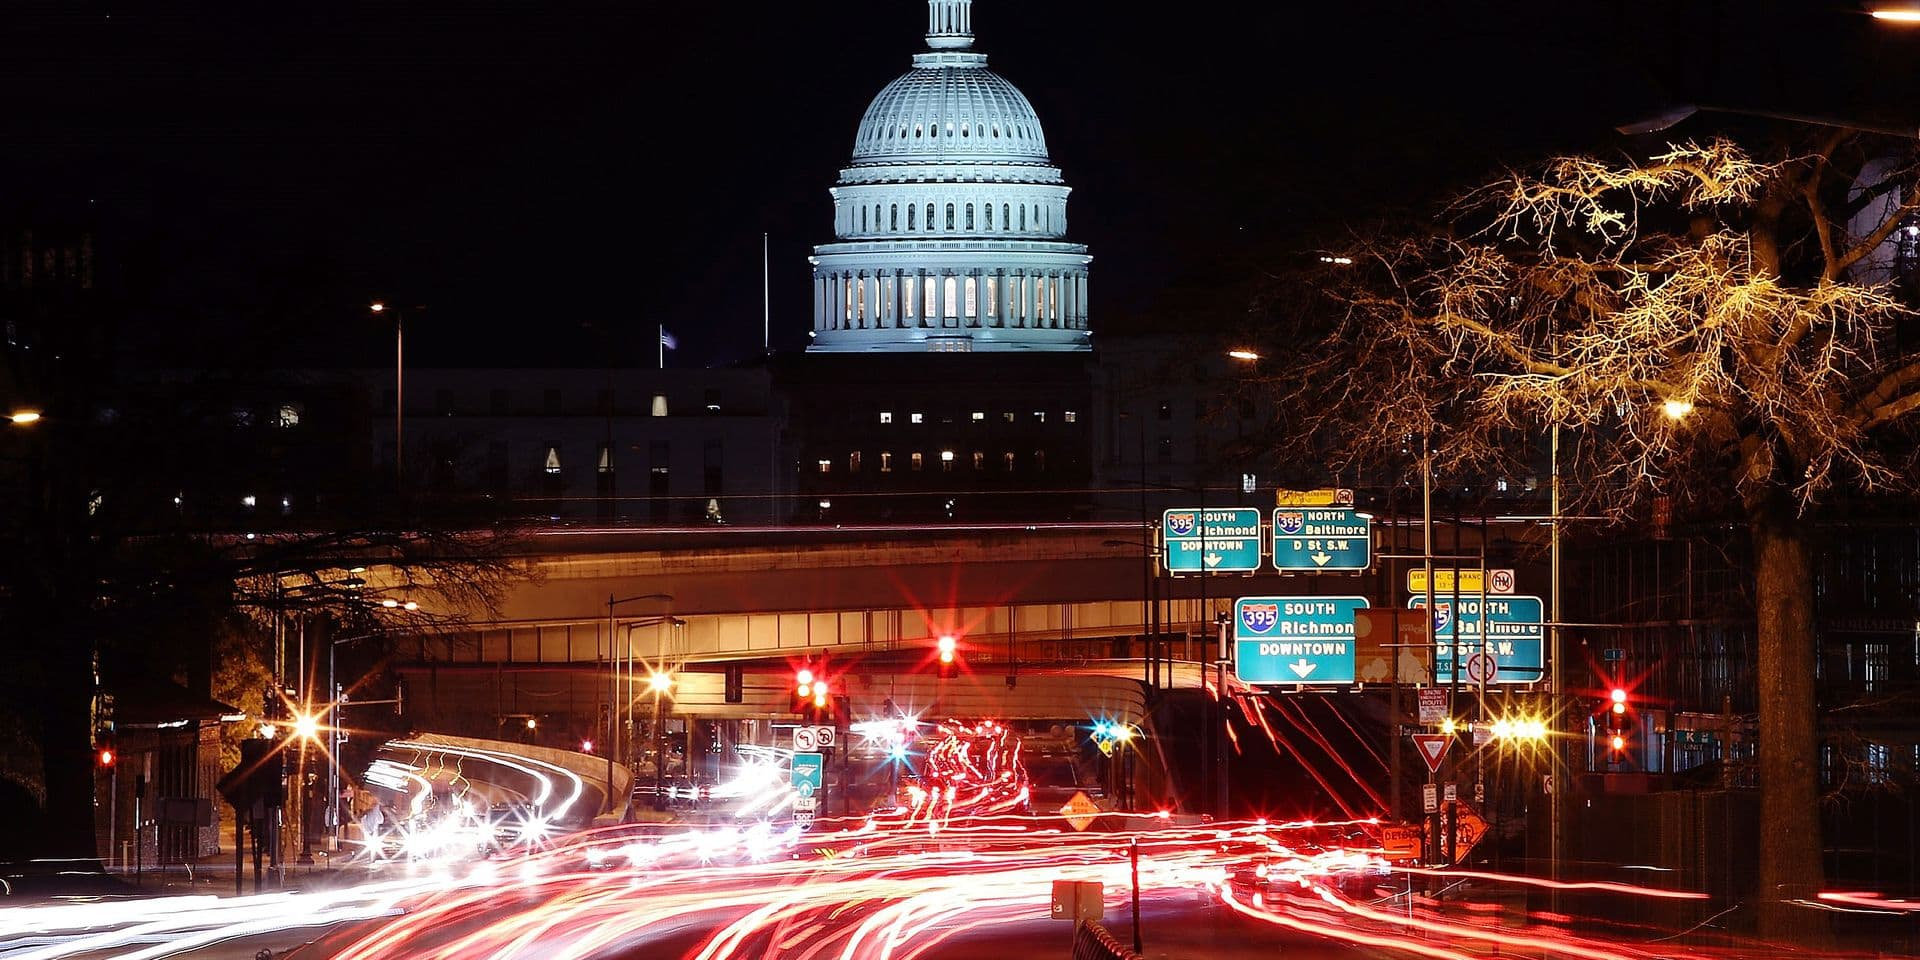 WASHINGTON, DC - JANUARY 22: The U.S. Capitol can be seen as traffic moves in and out of the city, on January 22, 2018 in Washington, DC. On day 3 of the government shutdown, lawmakers are convening to try to resolve their differences and reopen the government. Mark Wilson/Getty Images/AFP == FOR NEWSPAPERS, INTERNET, TELCOS & TELEVISION USE ONLY ==